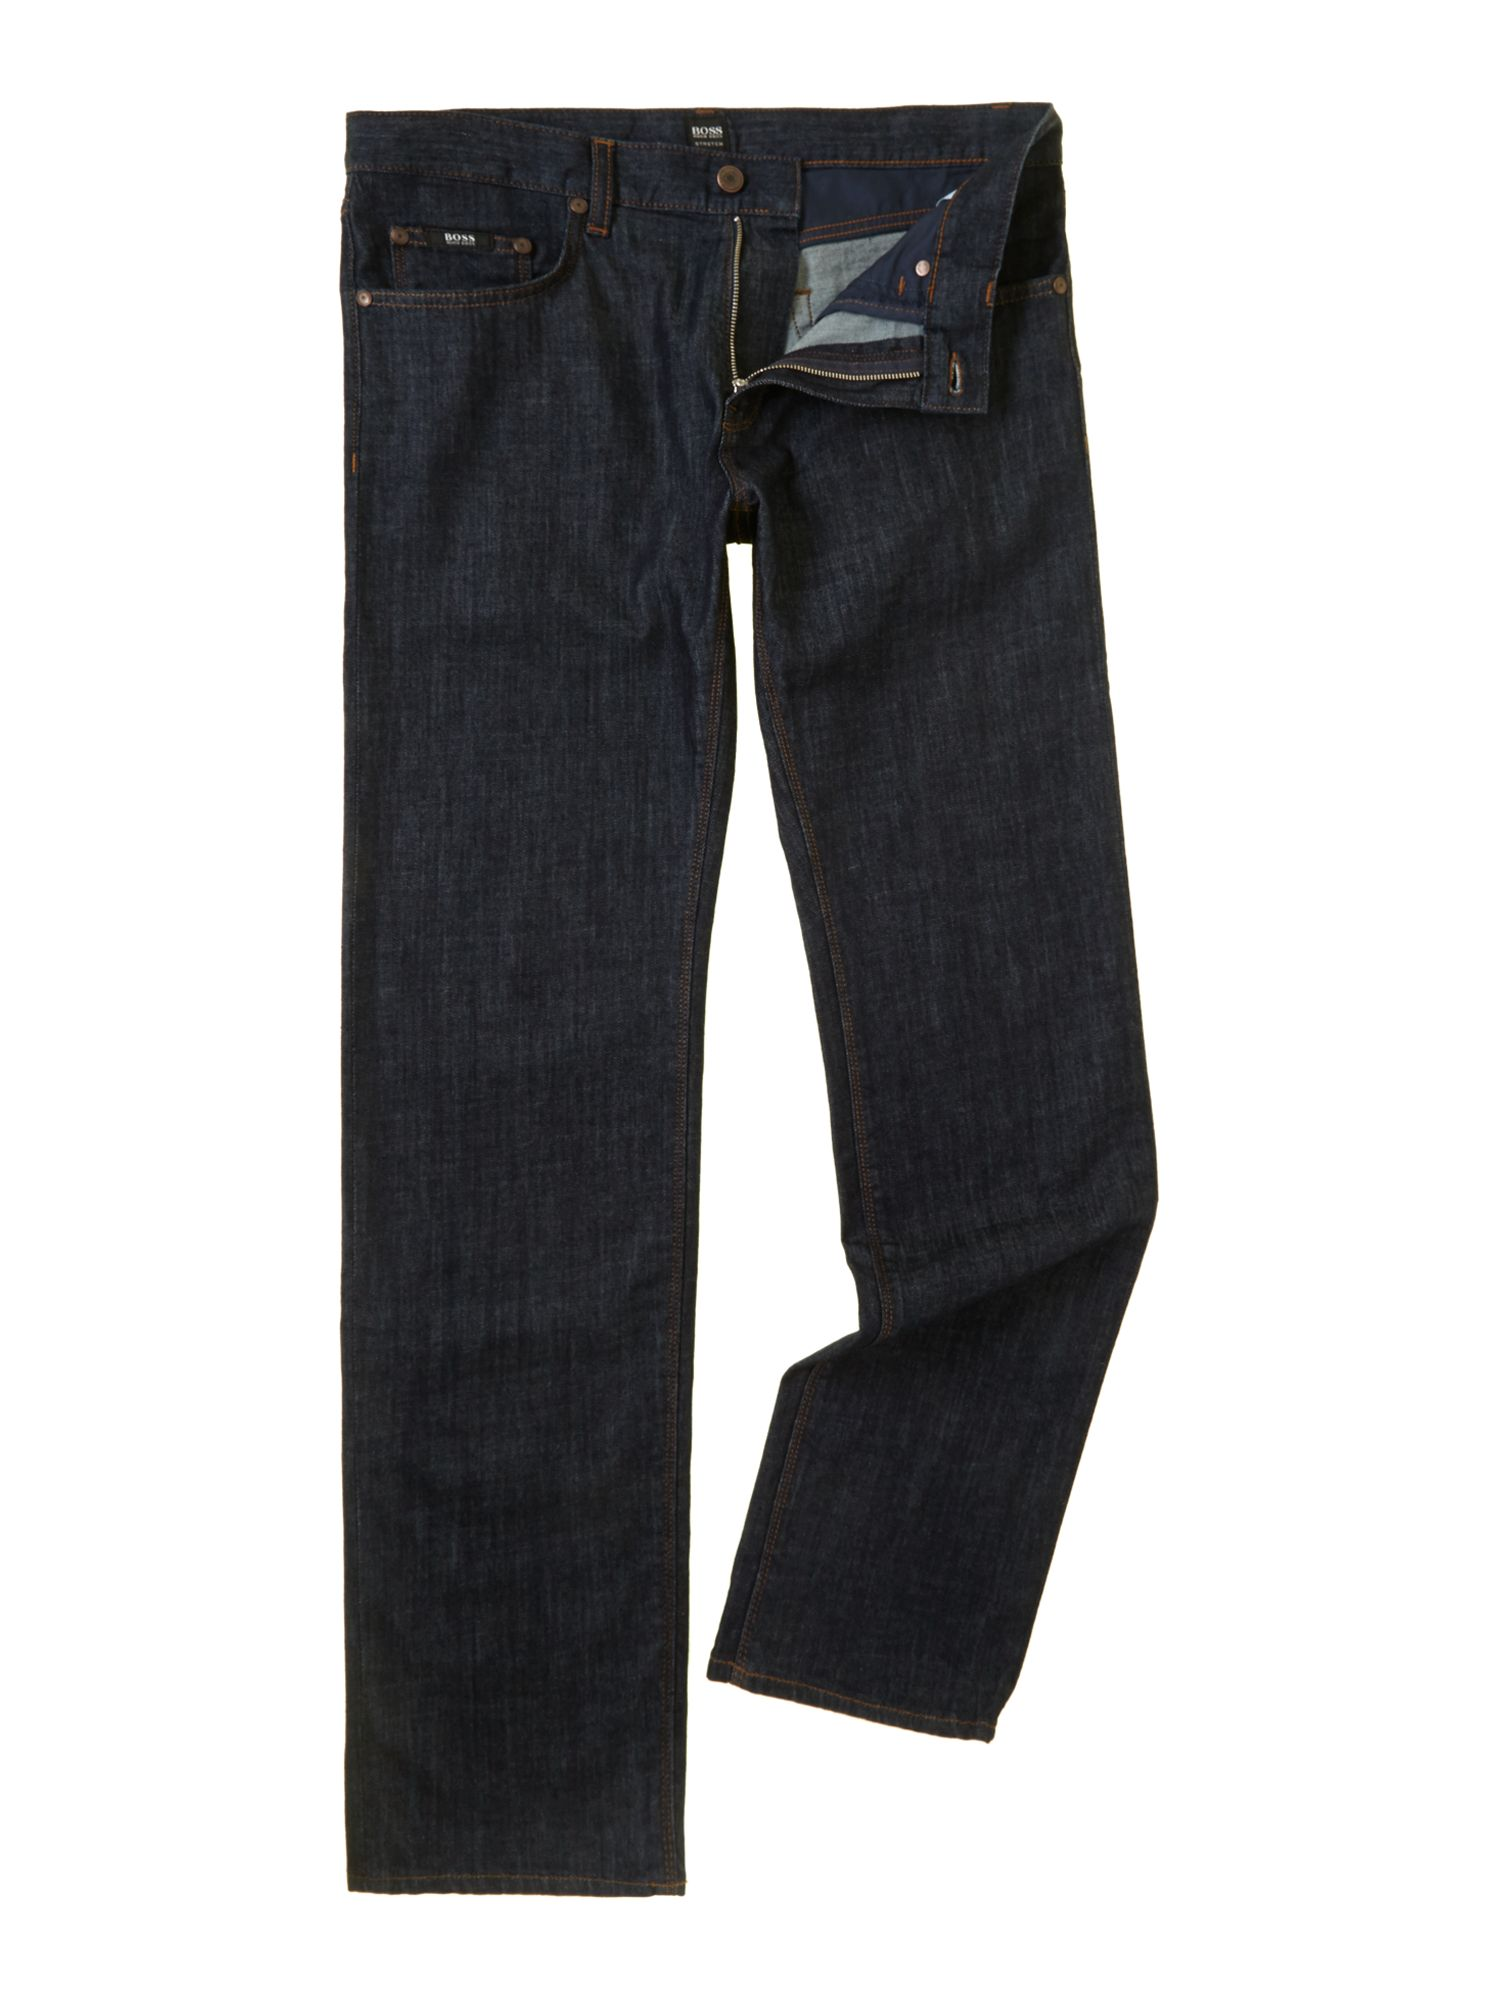 Maine regular straight rinse jean